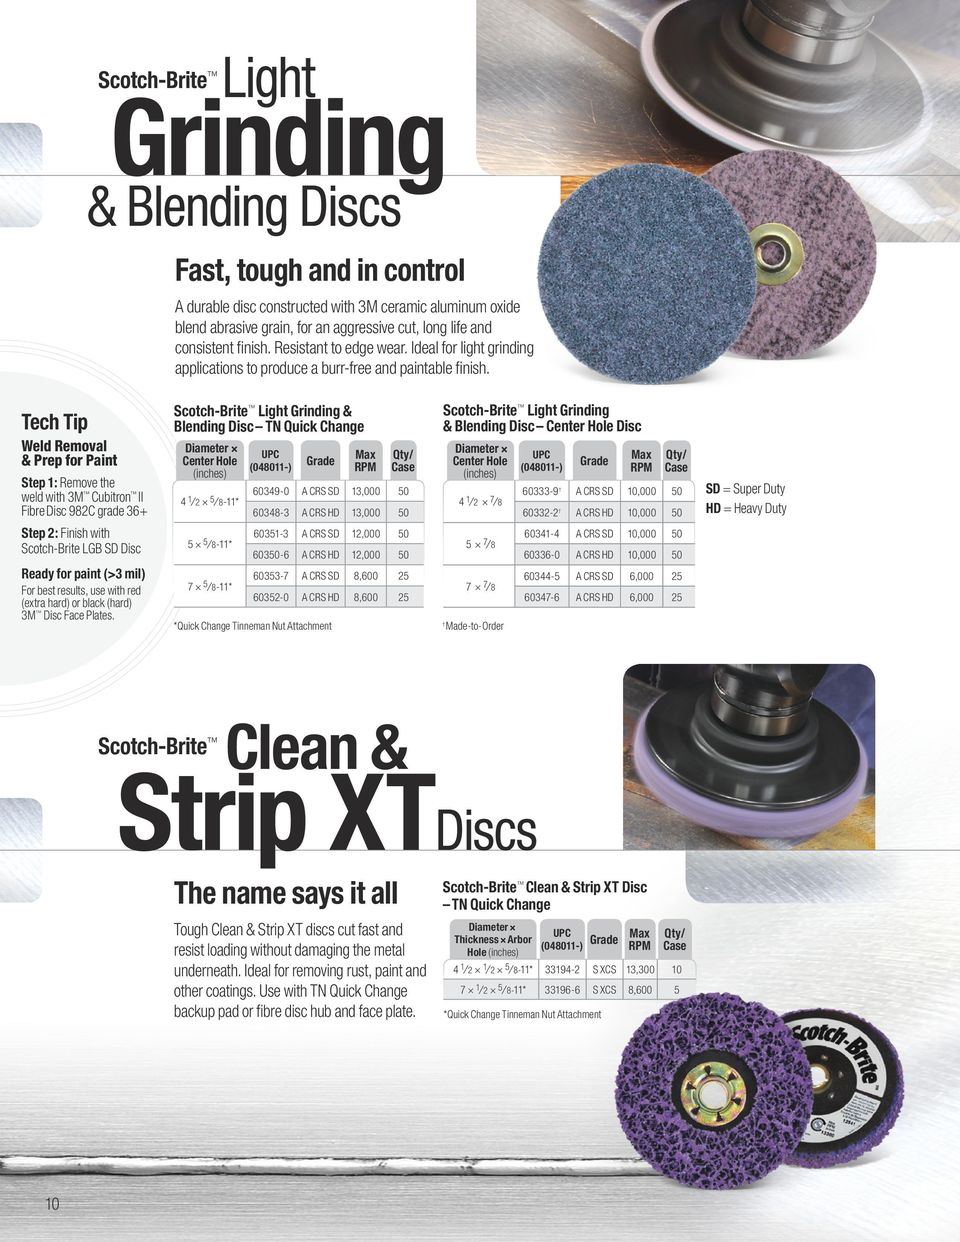 Scotch-Brite Light Grinding & Blending Disc Center Hole Disc Scotch-Brite Light Grinding & Blending Disc TN Quick Change Tech Tip Weld Removal & Prep for Paint Step 1: Remove the weld with 3M